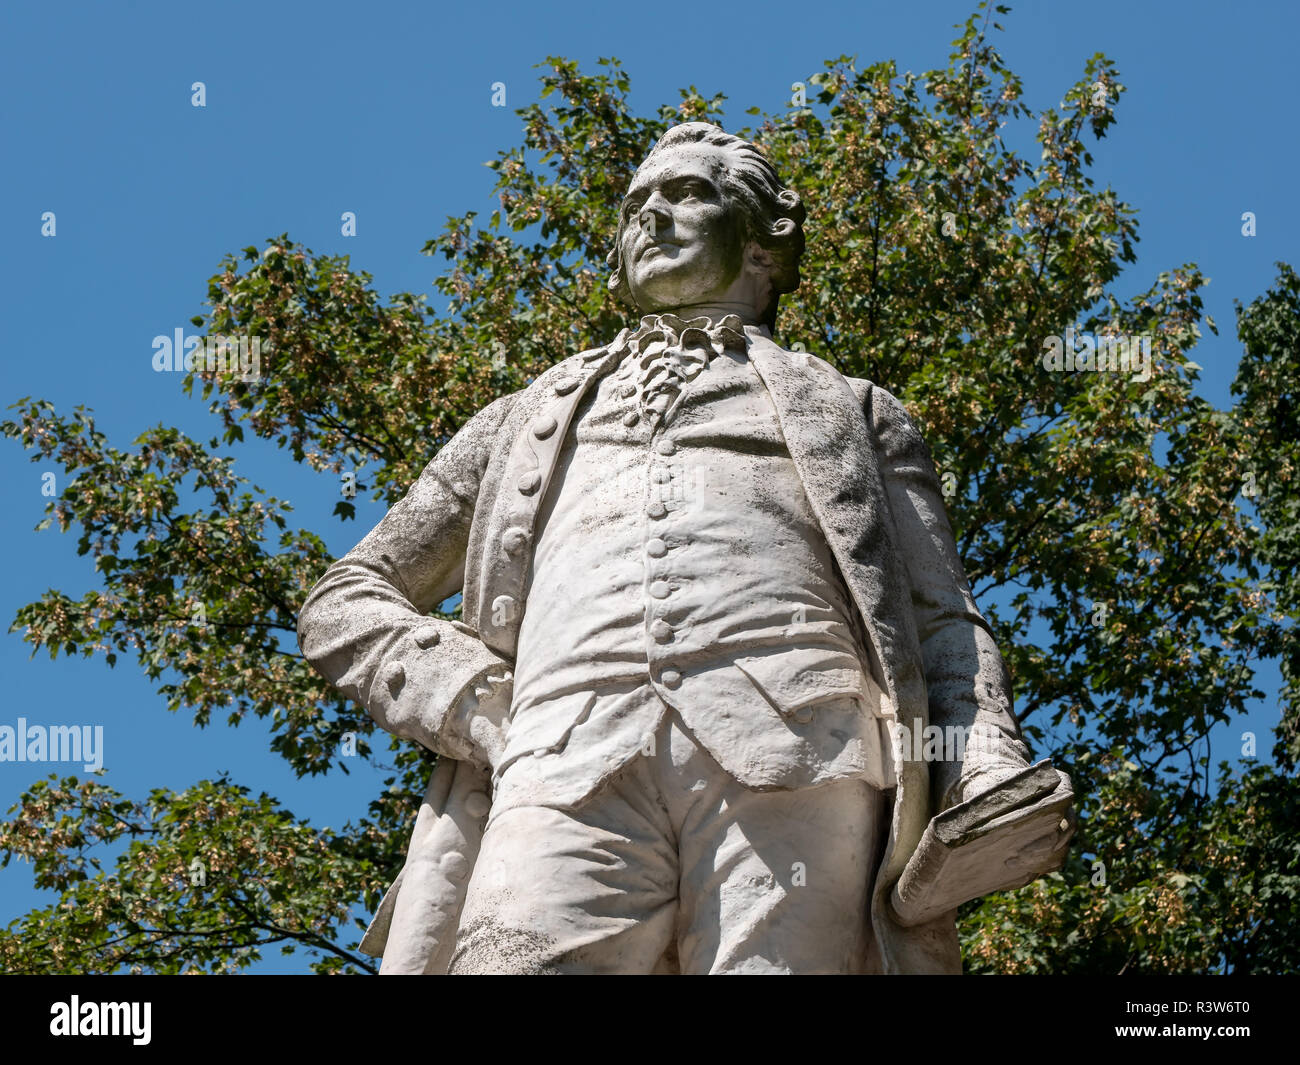 Statue of The Lessing Monument, German: Lessing-Denkmal, To Writer Gotthold Ephraim Lessing At Tiergarten in Berlin, Germany - Stock Image